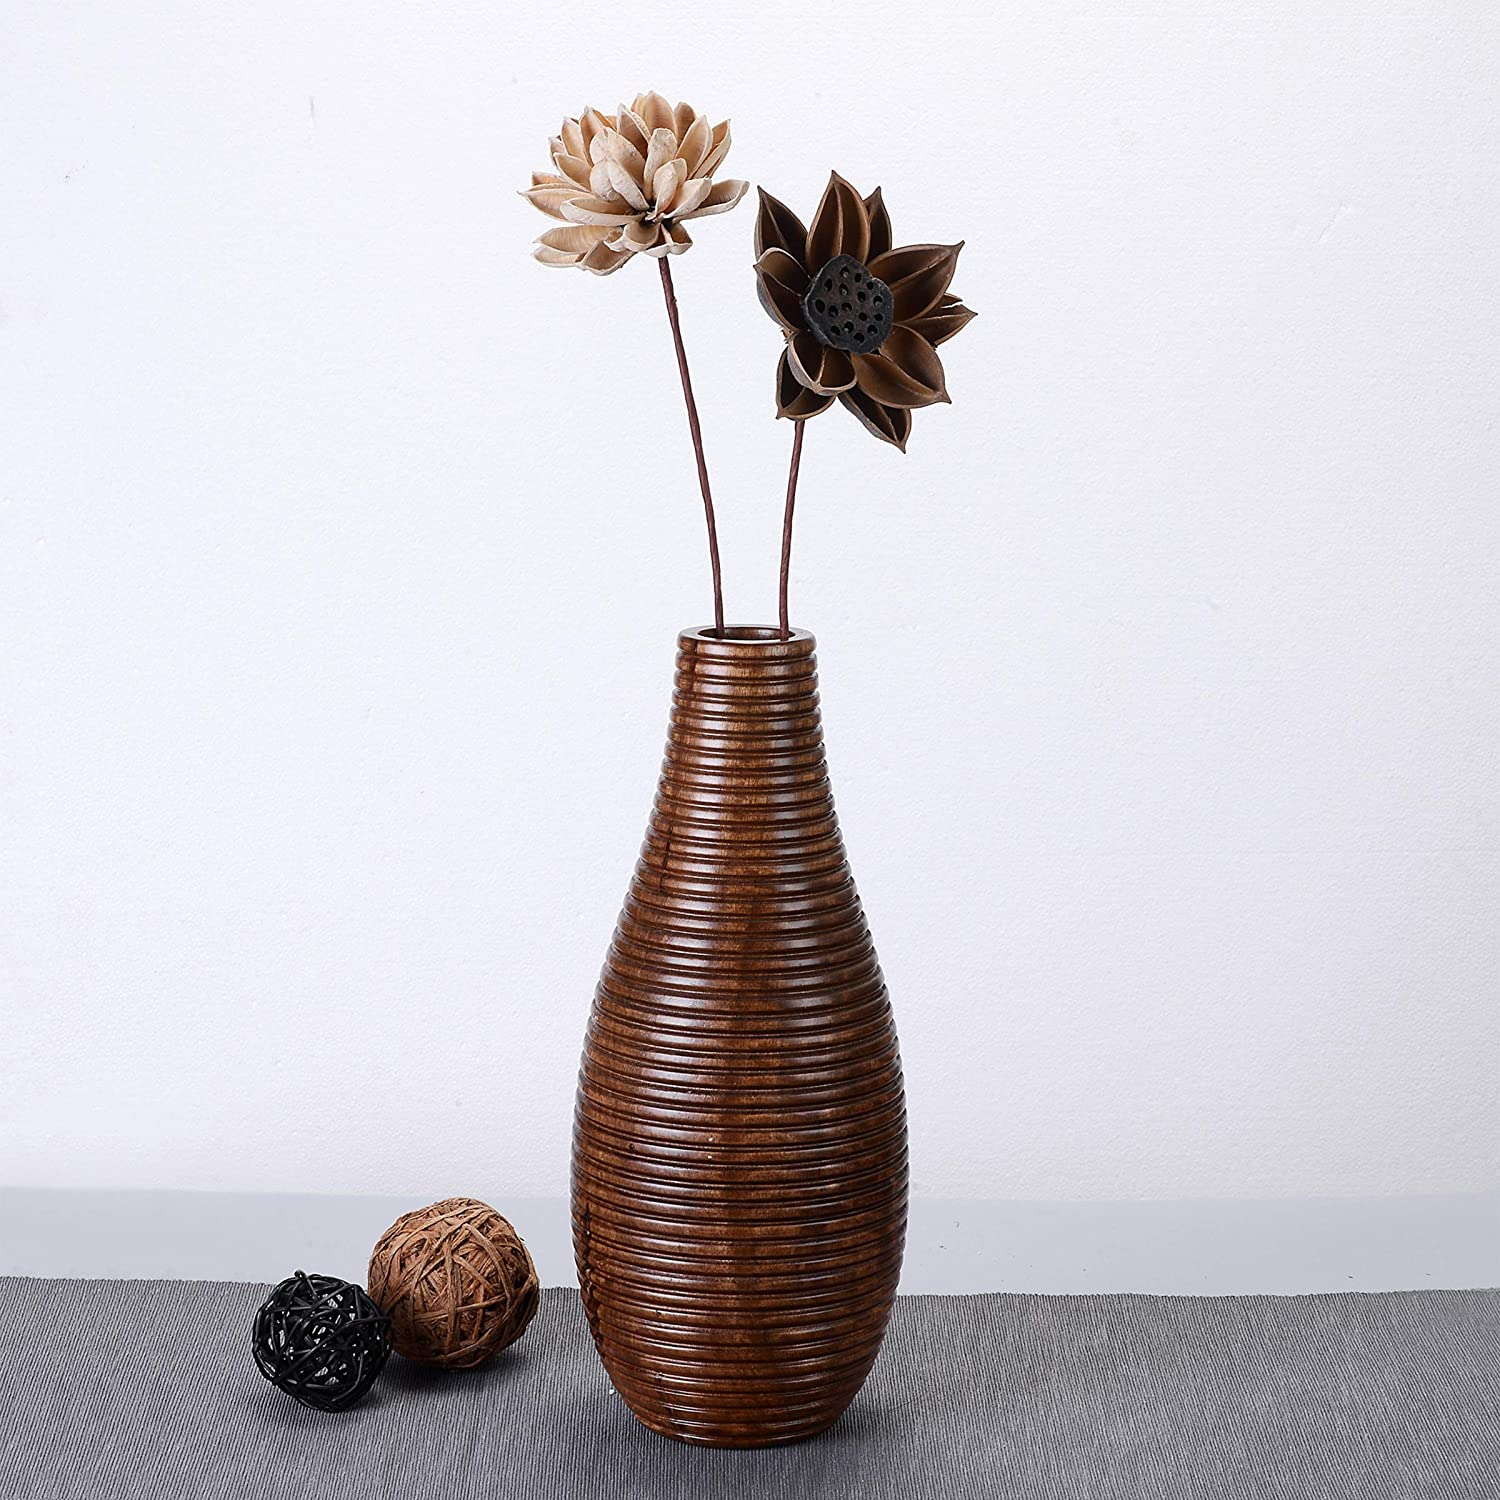 Sustainable Wood Decorative Carved Lines Faux Flower Planter Eco-Friendly Villacera Handmade 14 Tall Bottle Mango Brown Round Ripple Vase